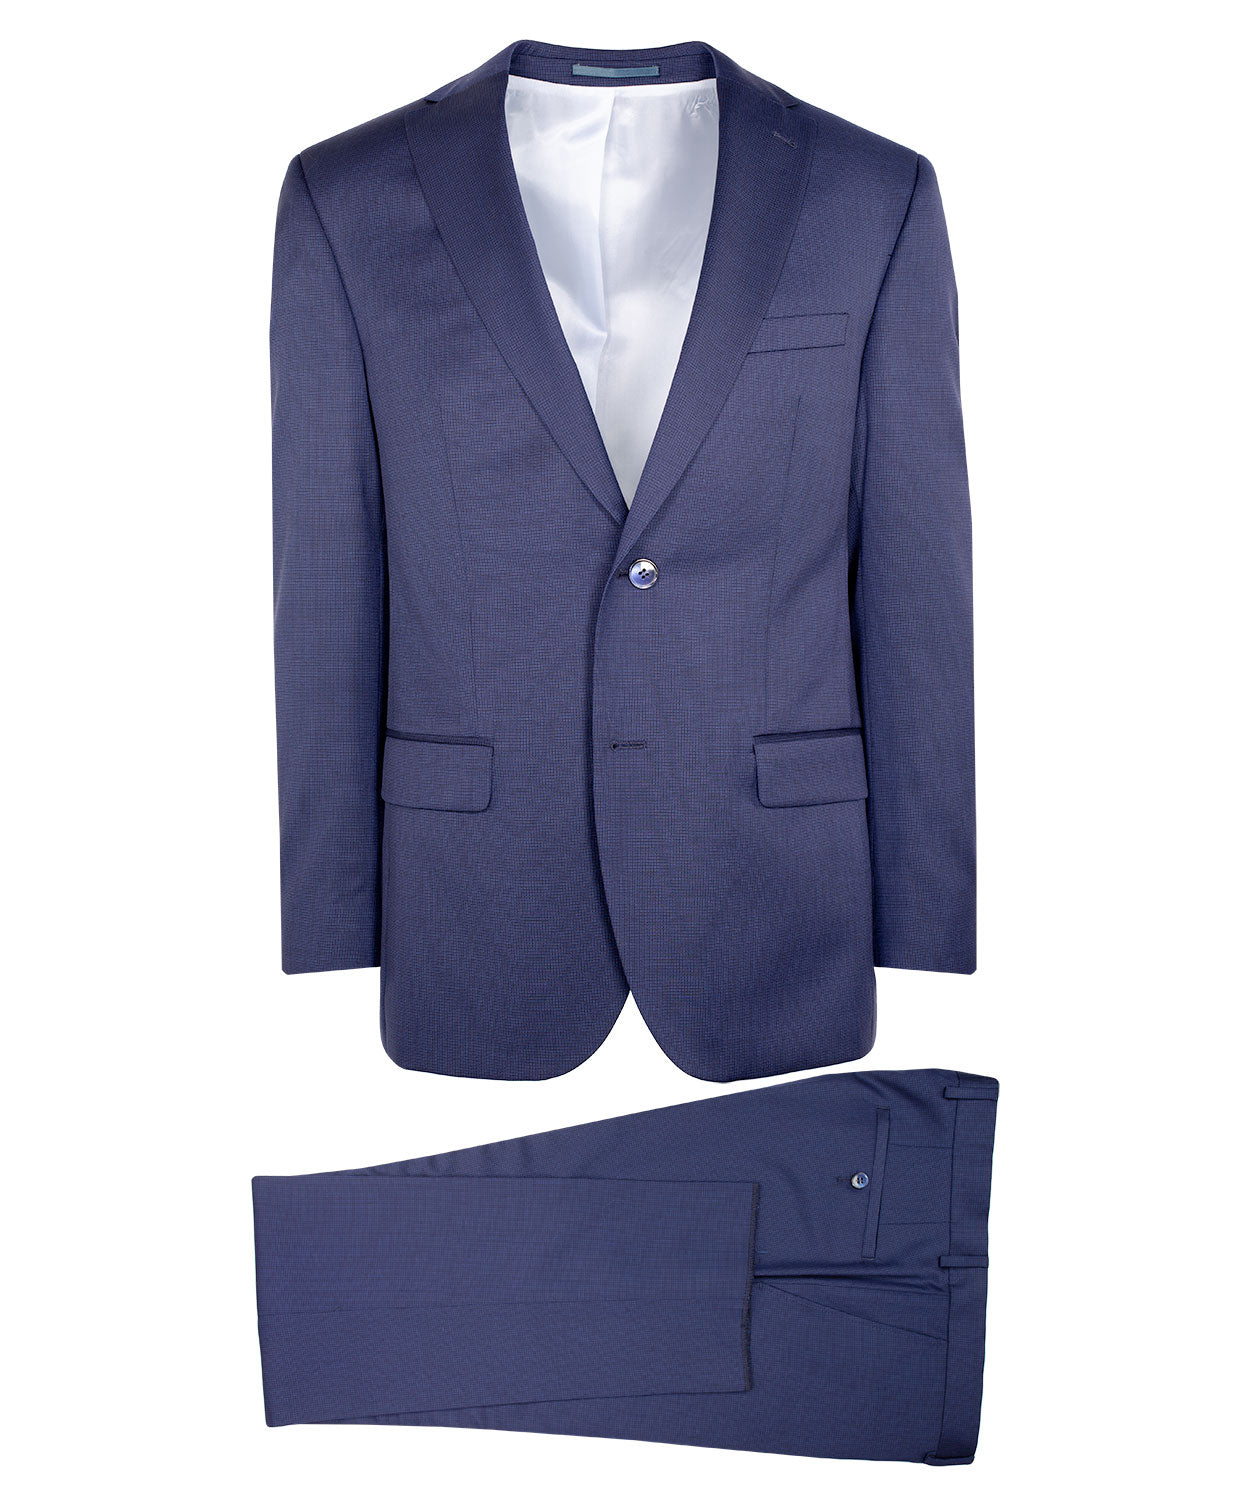 Navy Tonal Cross-Hatch Suit